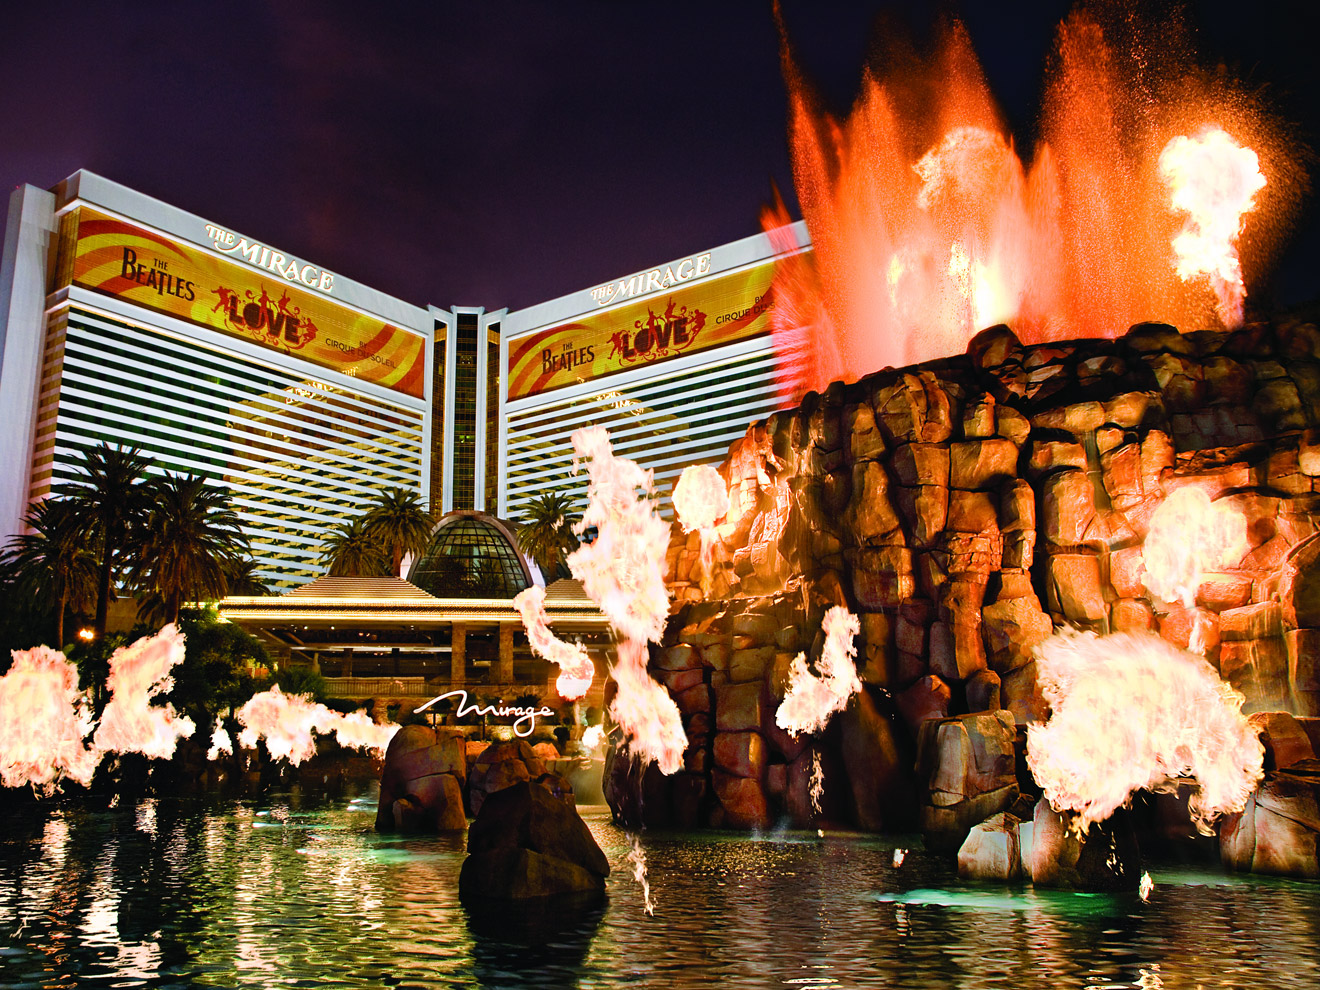 The Mirage Hotel Volcano Show